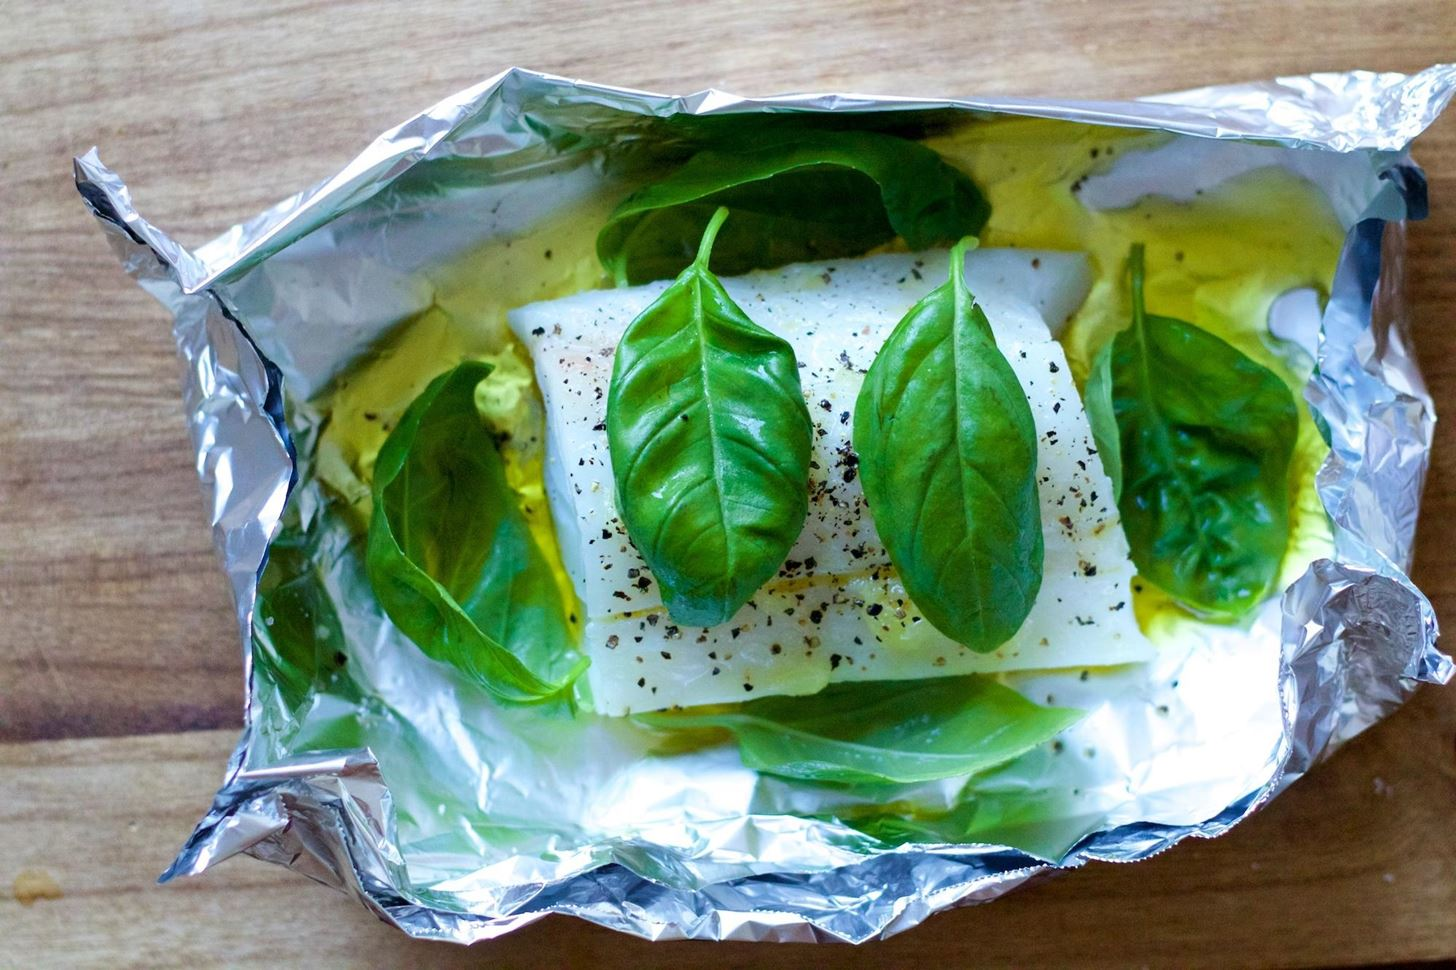 Cooking Fish with Foil Is Fantastically Foolproof